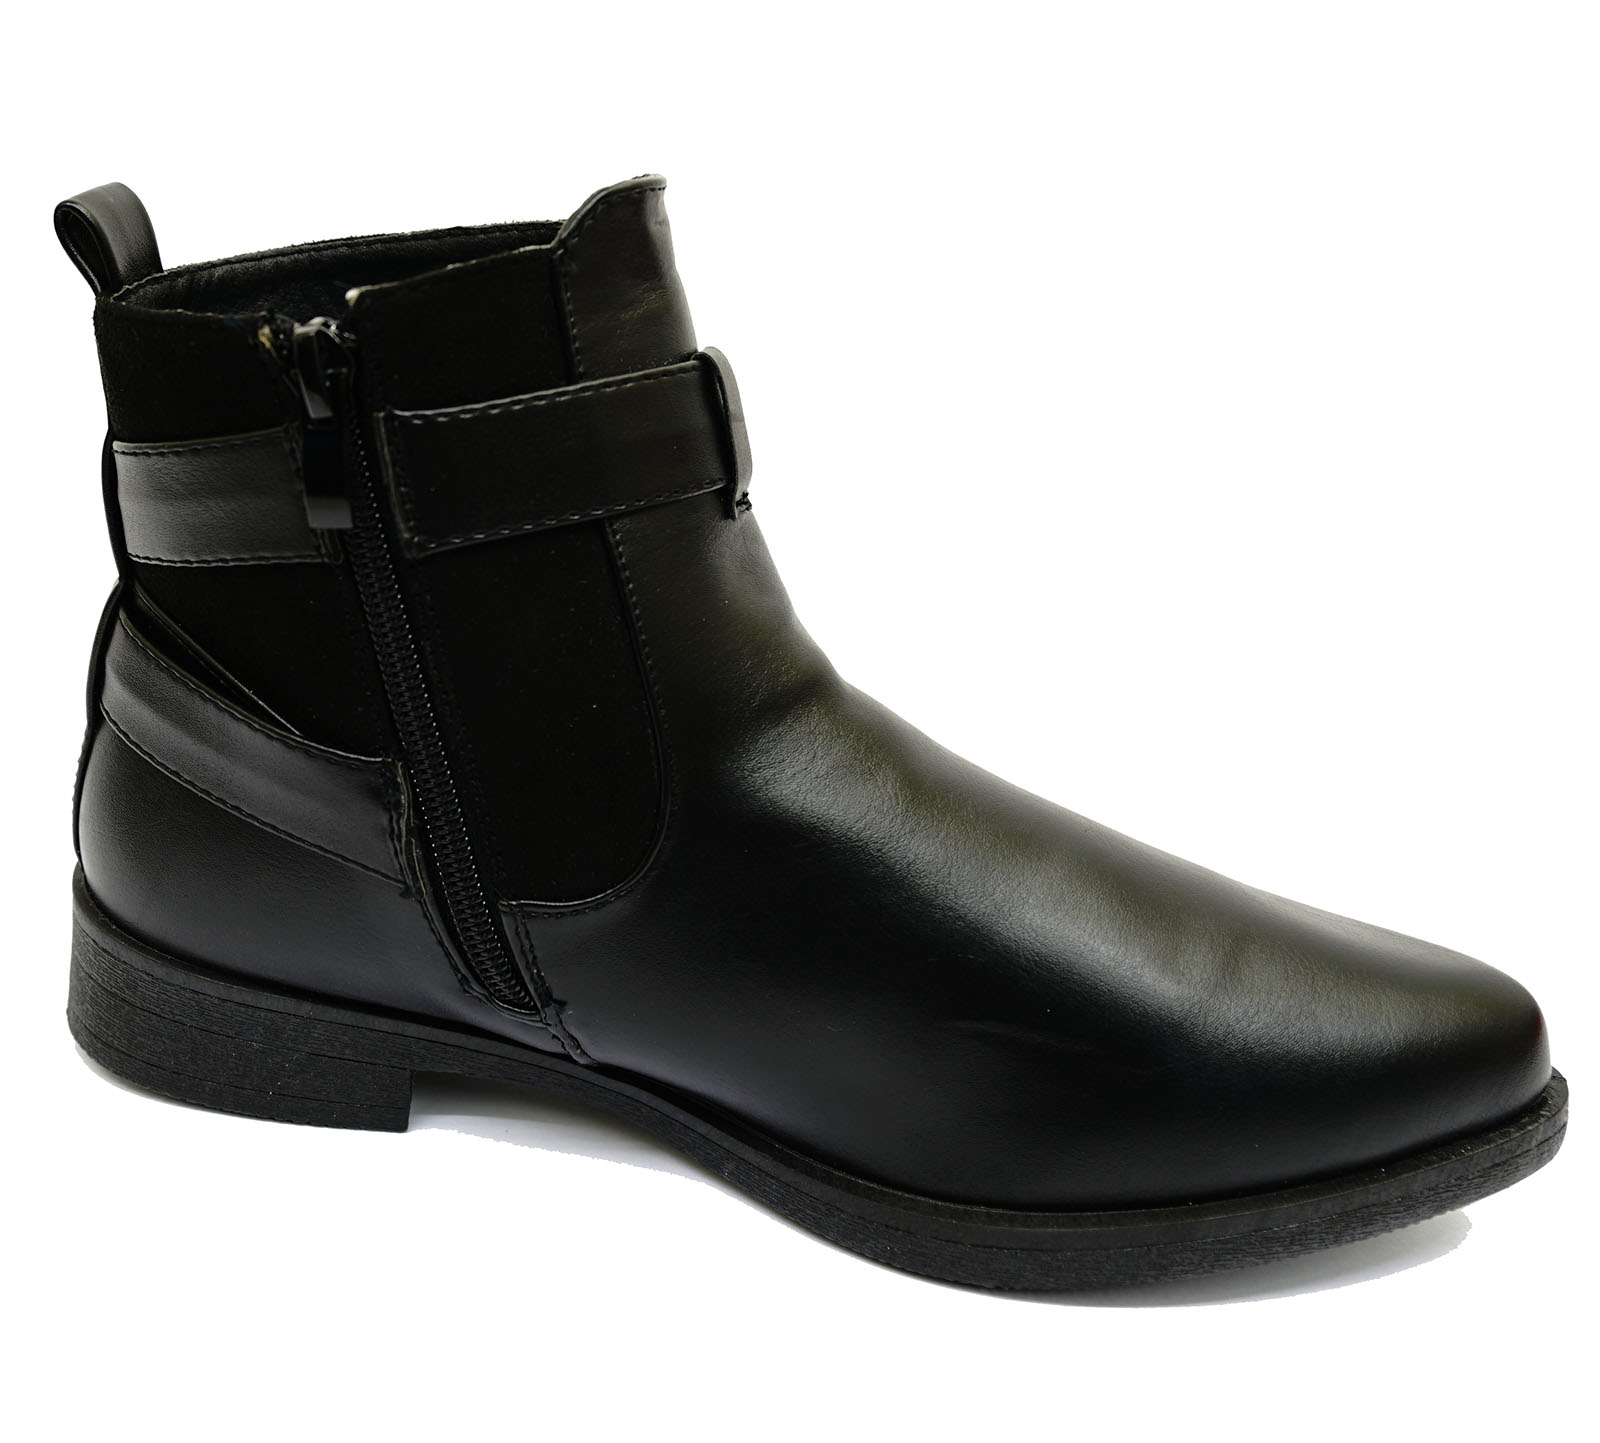 New Chelsea Boots Women With Luxury Image In Singapore | Sobatapk.com